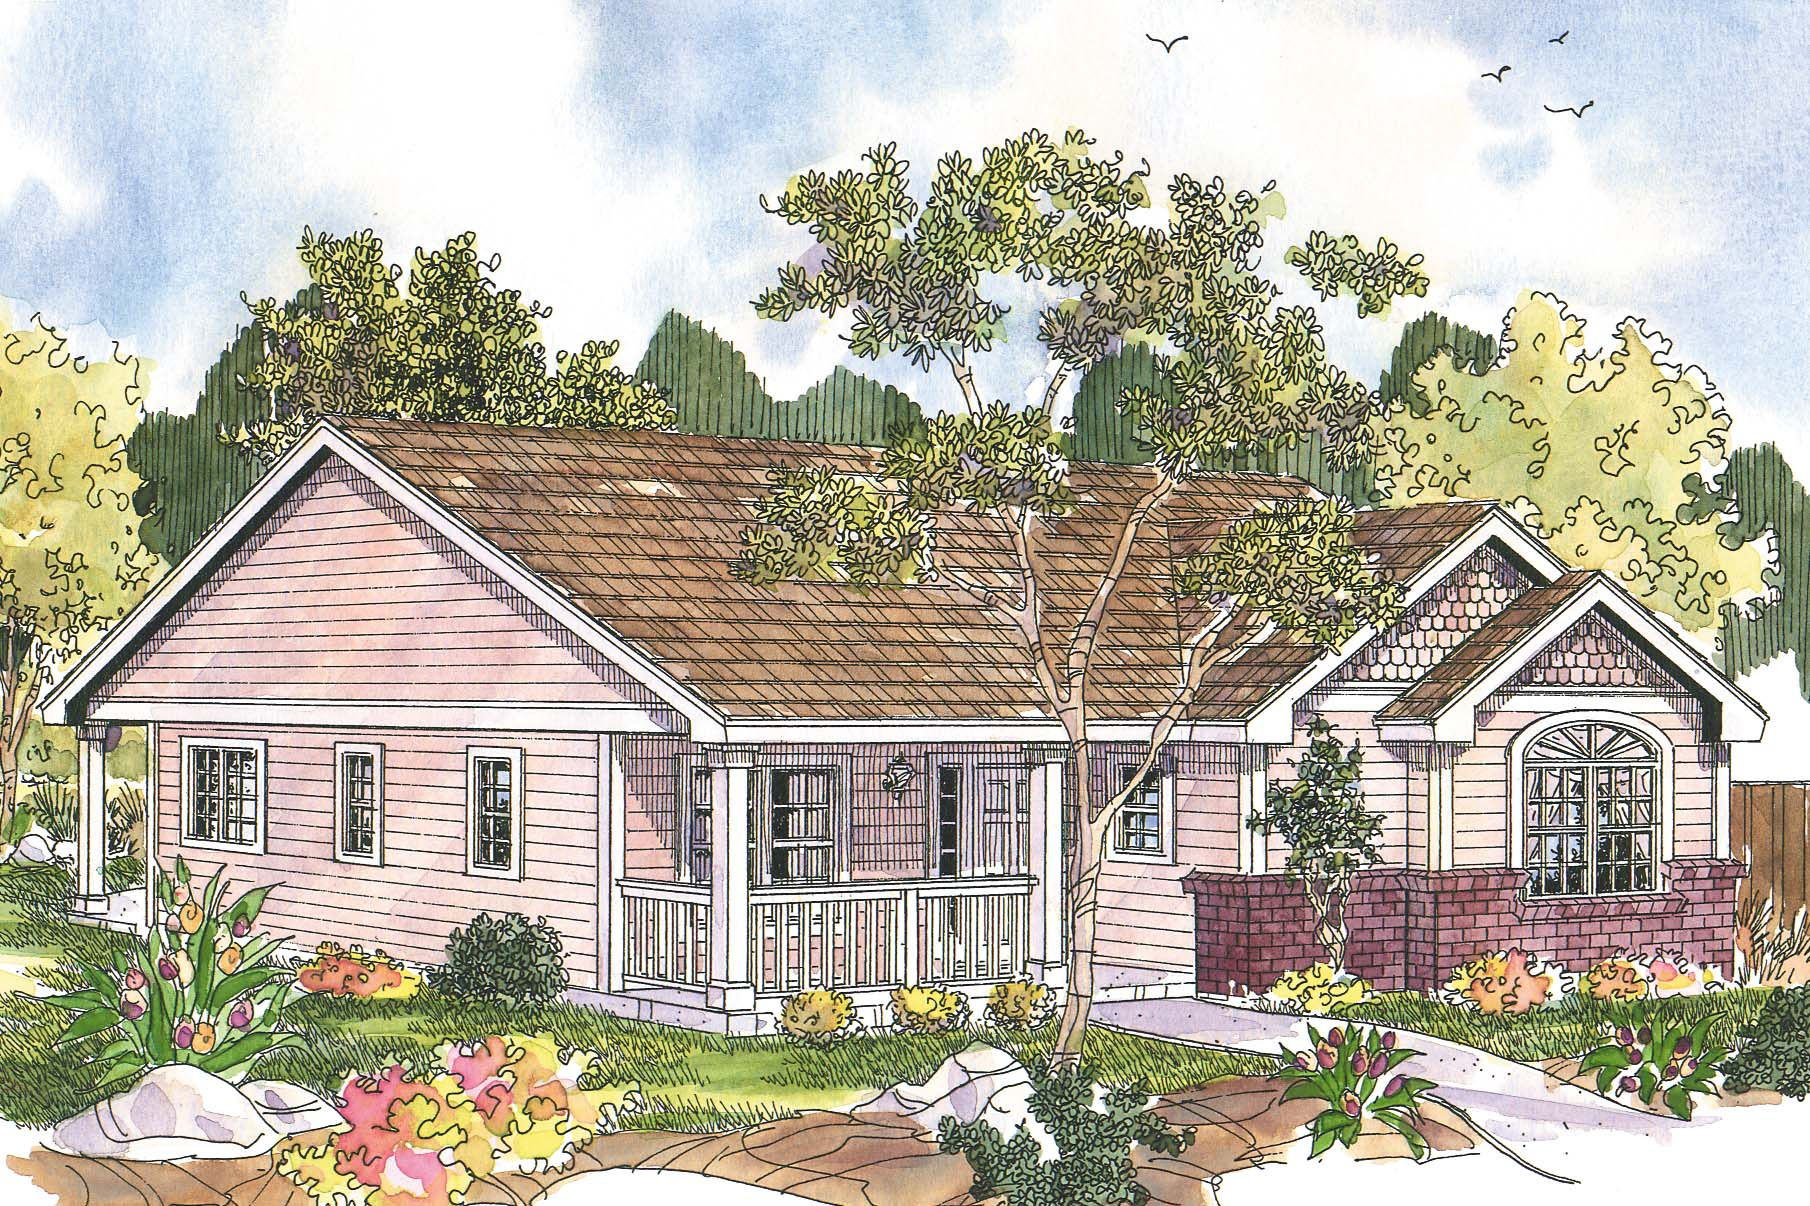 Cottage House Plan, Home Plan, Ranch House Plan, Callaway 30-641